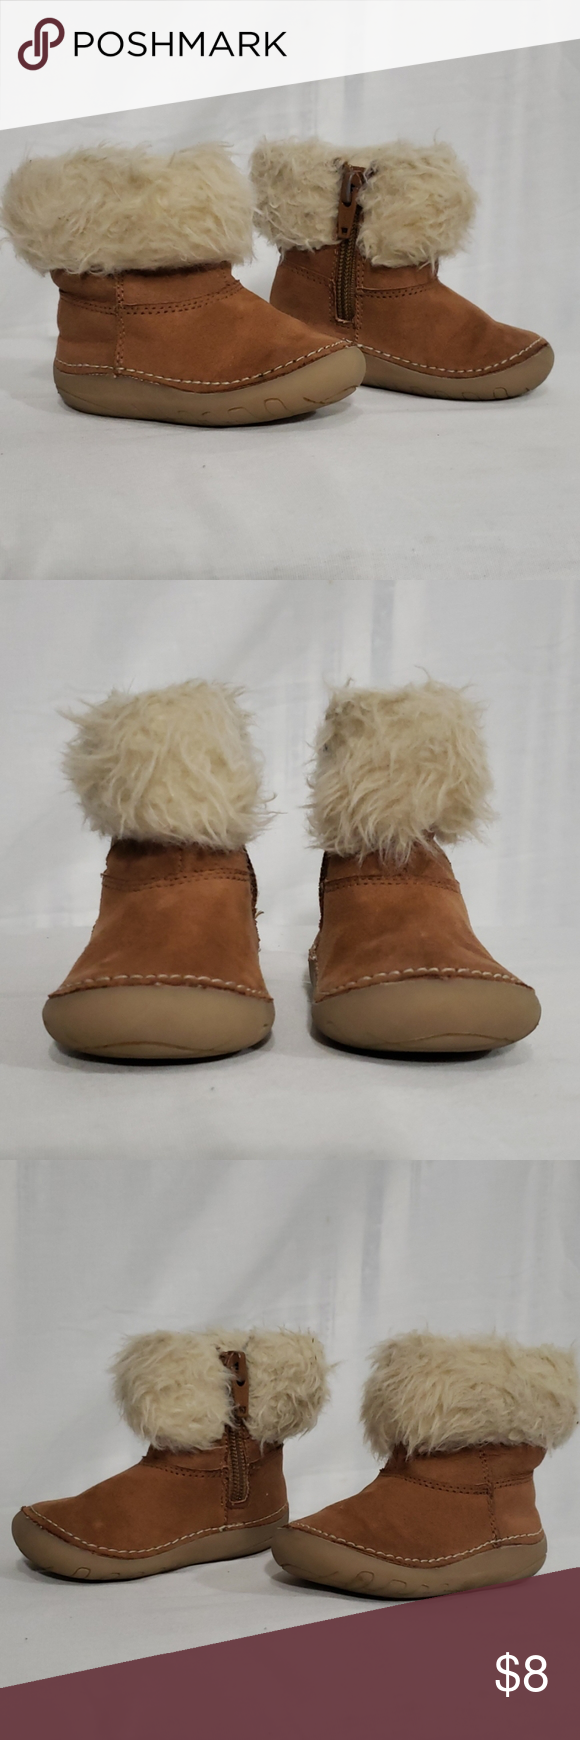 Target infant boots | Boots, Tan boots